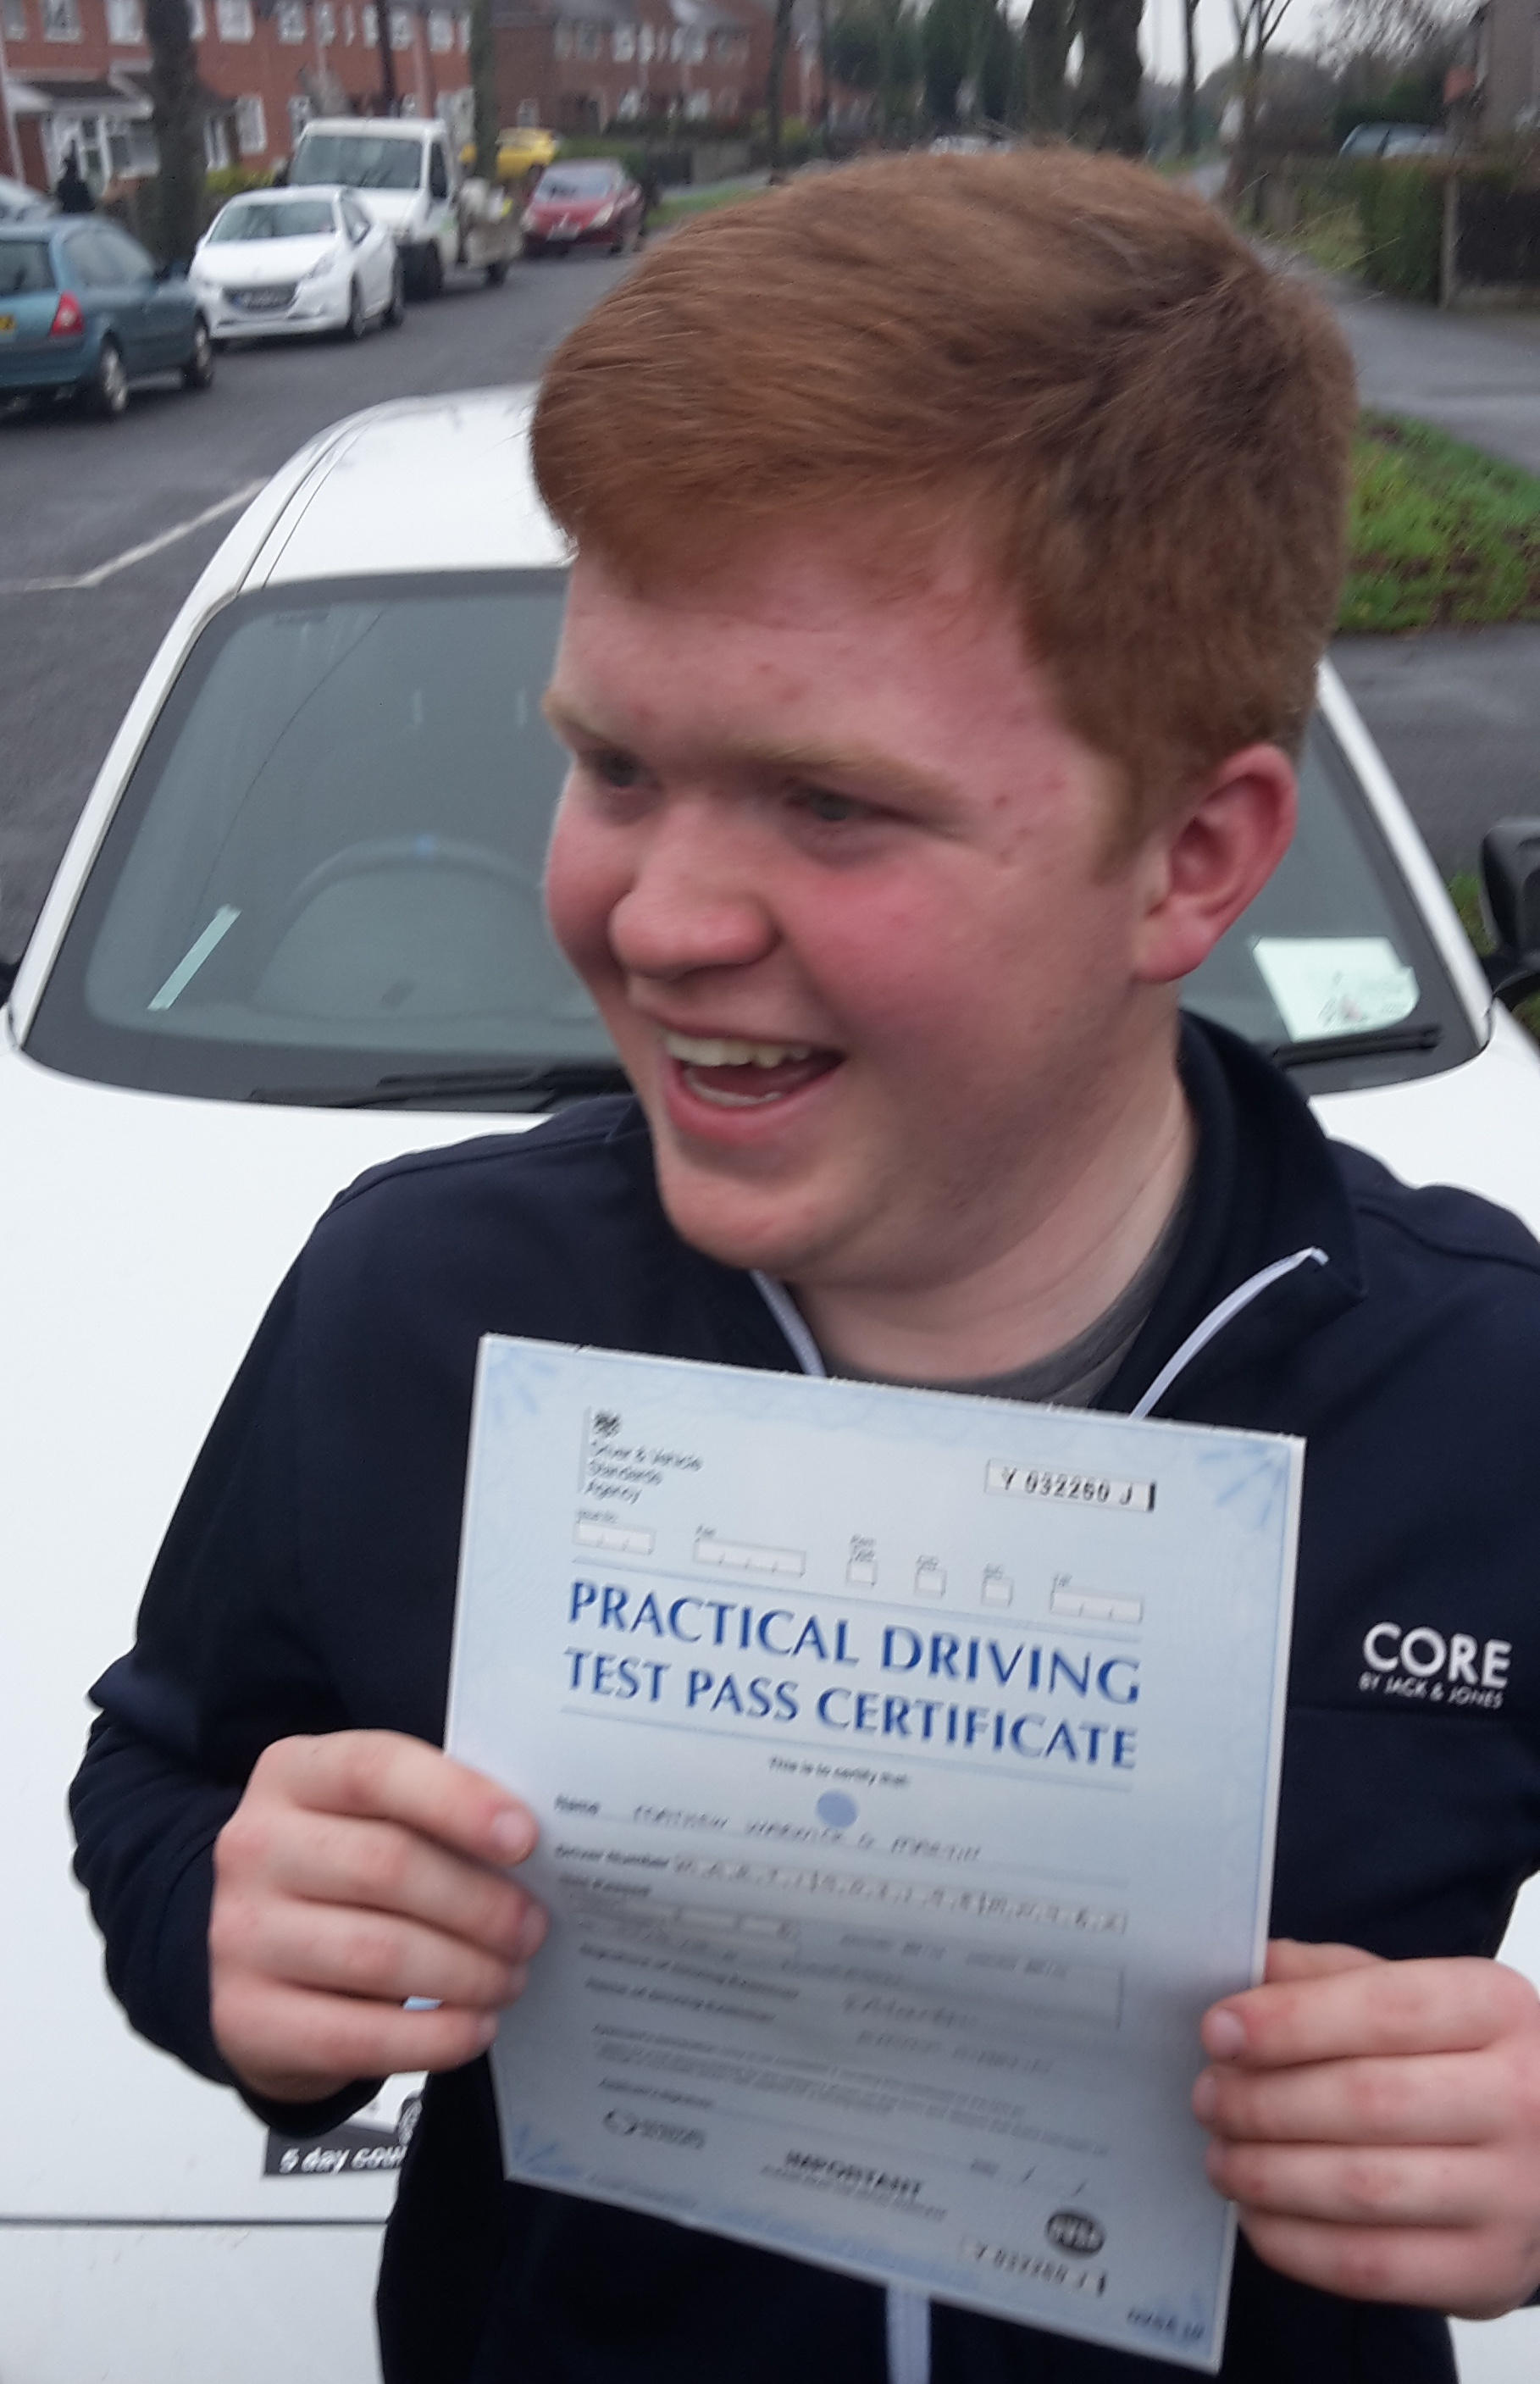 Driving test Local